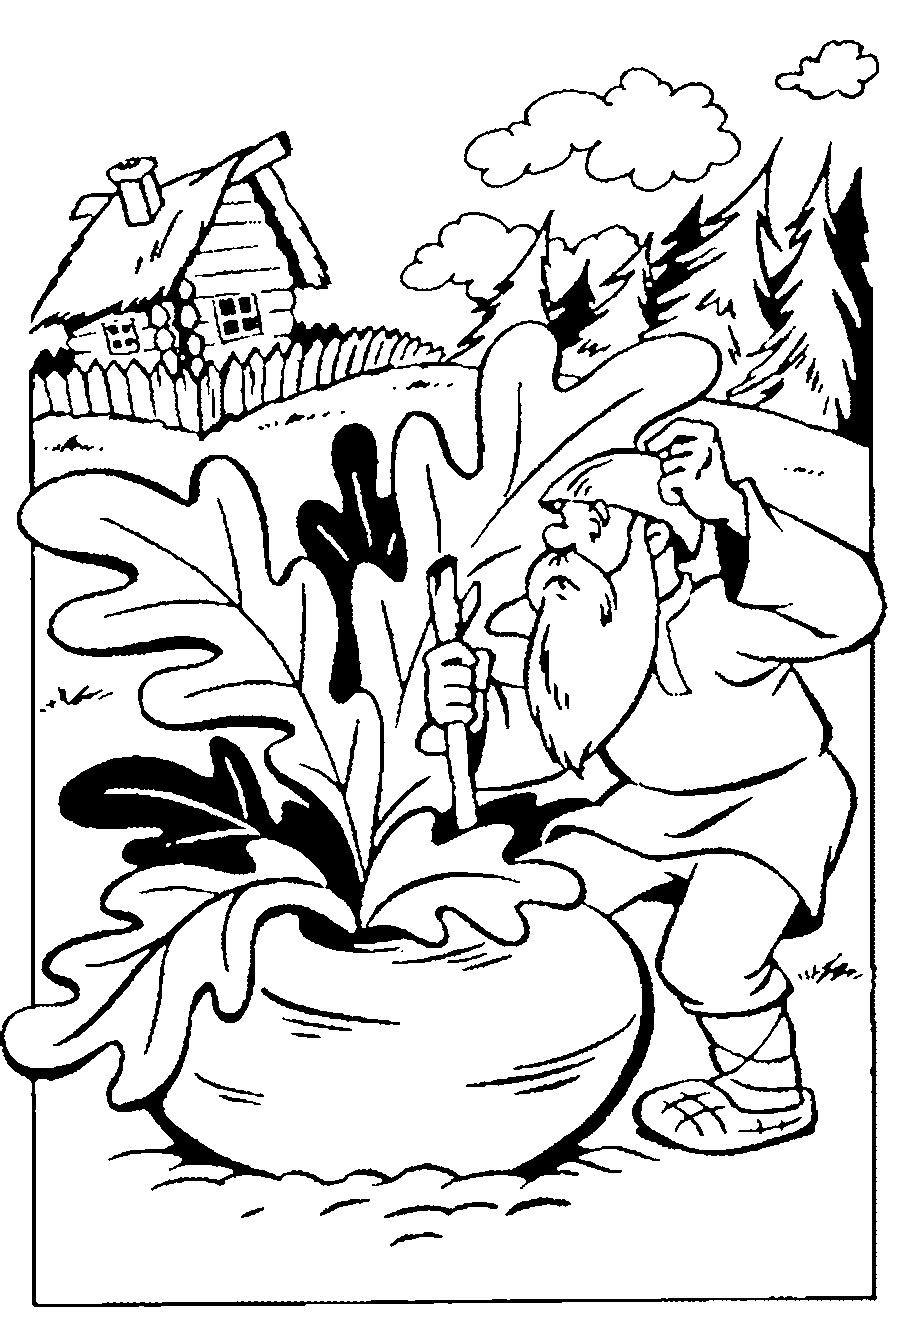 Coloring coloring pages on the story turnip turnip grew large at large